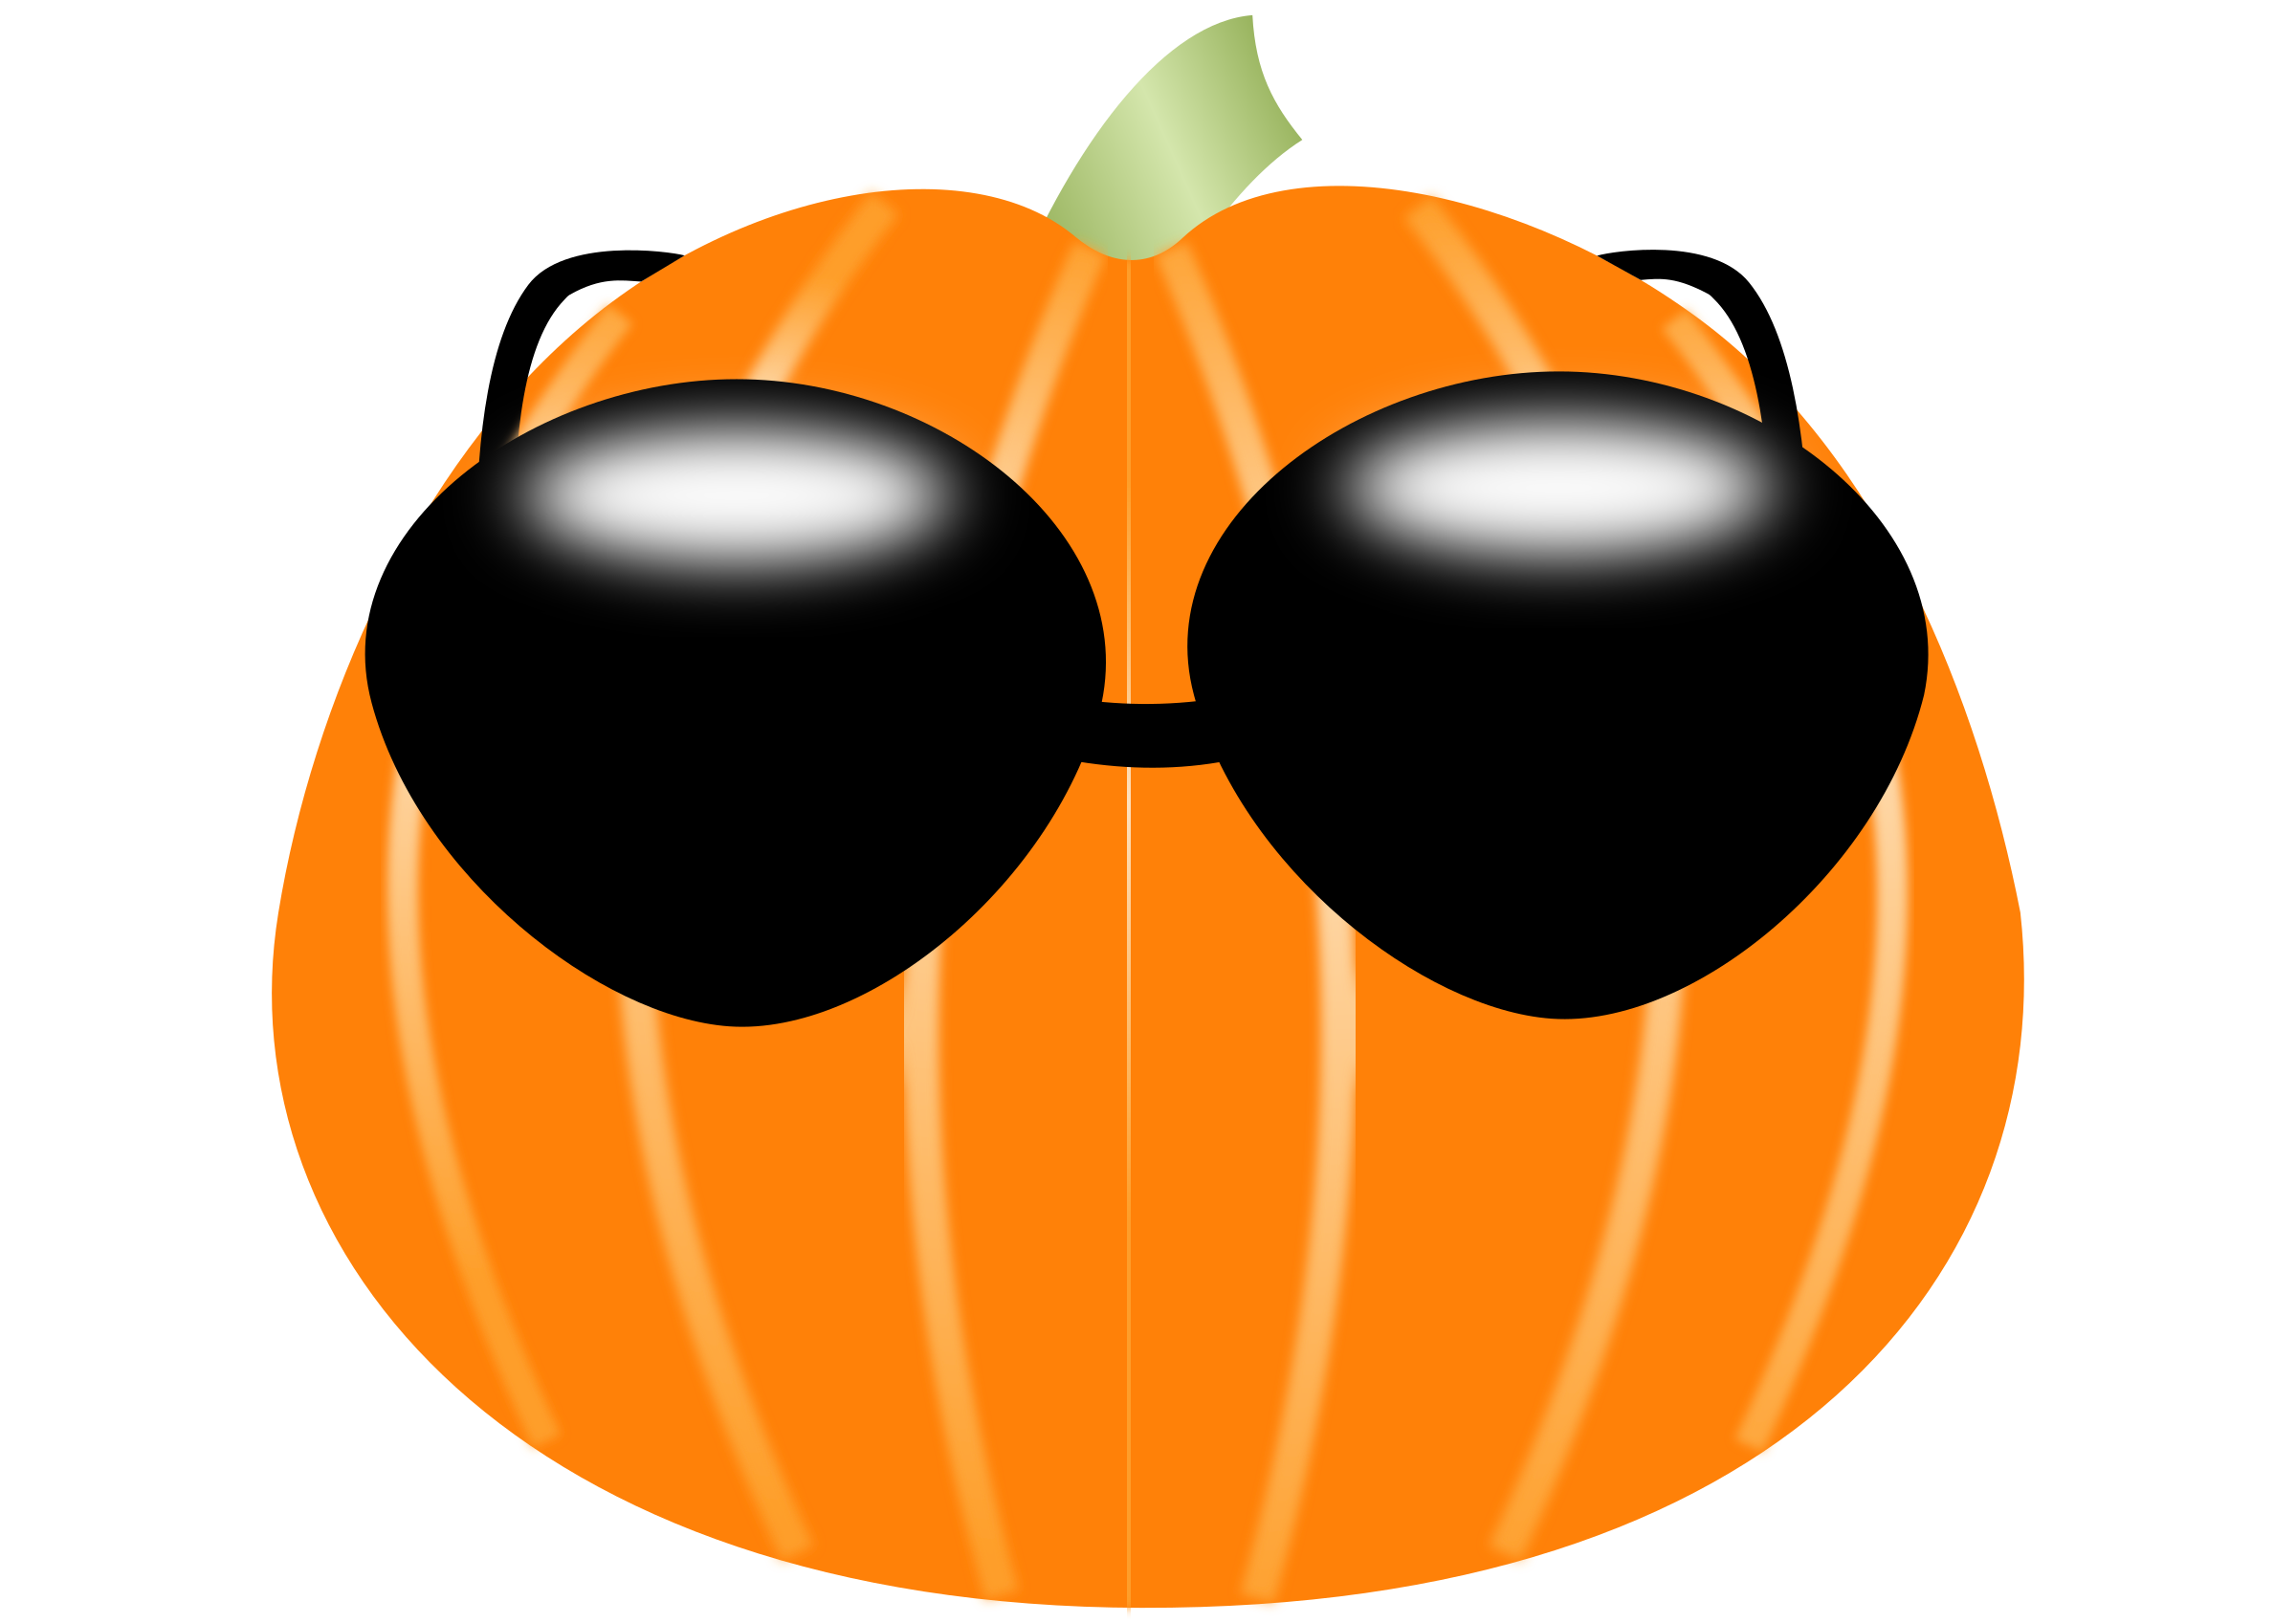 Pumpkin wearing sunglasses by Artmaker